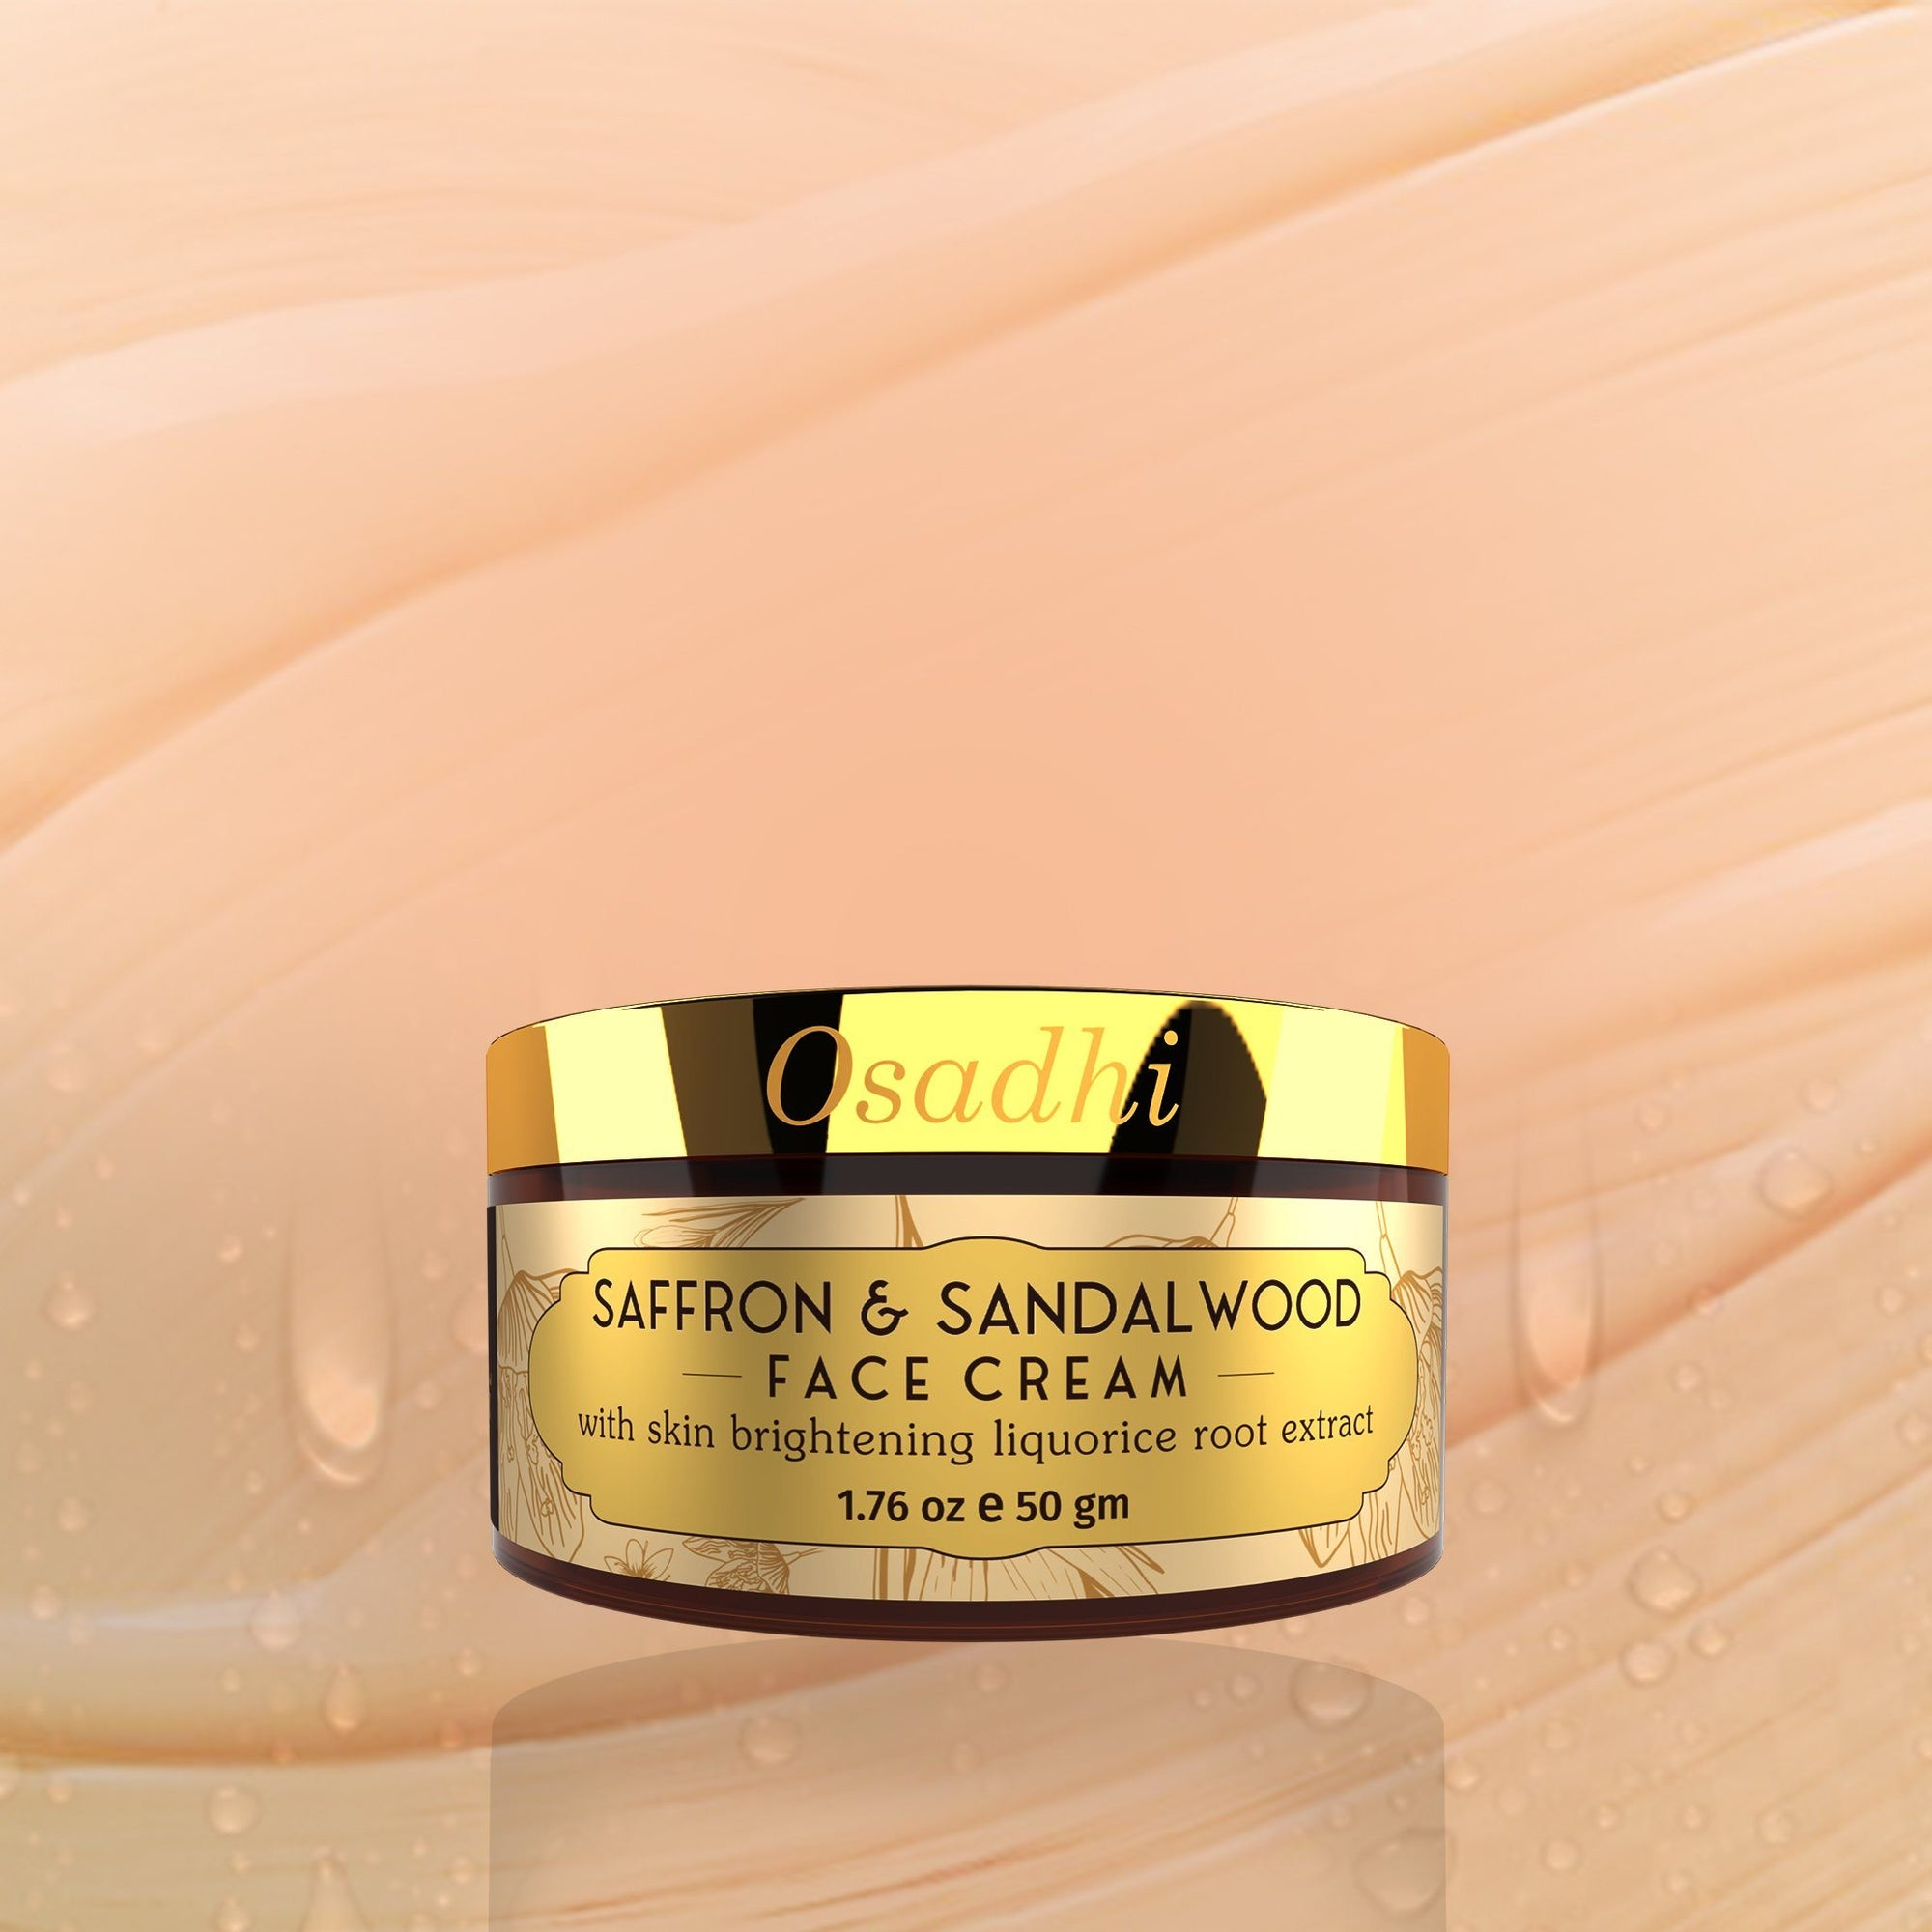 Saffron and Sandalwood Face Cream Osadhi